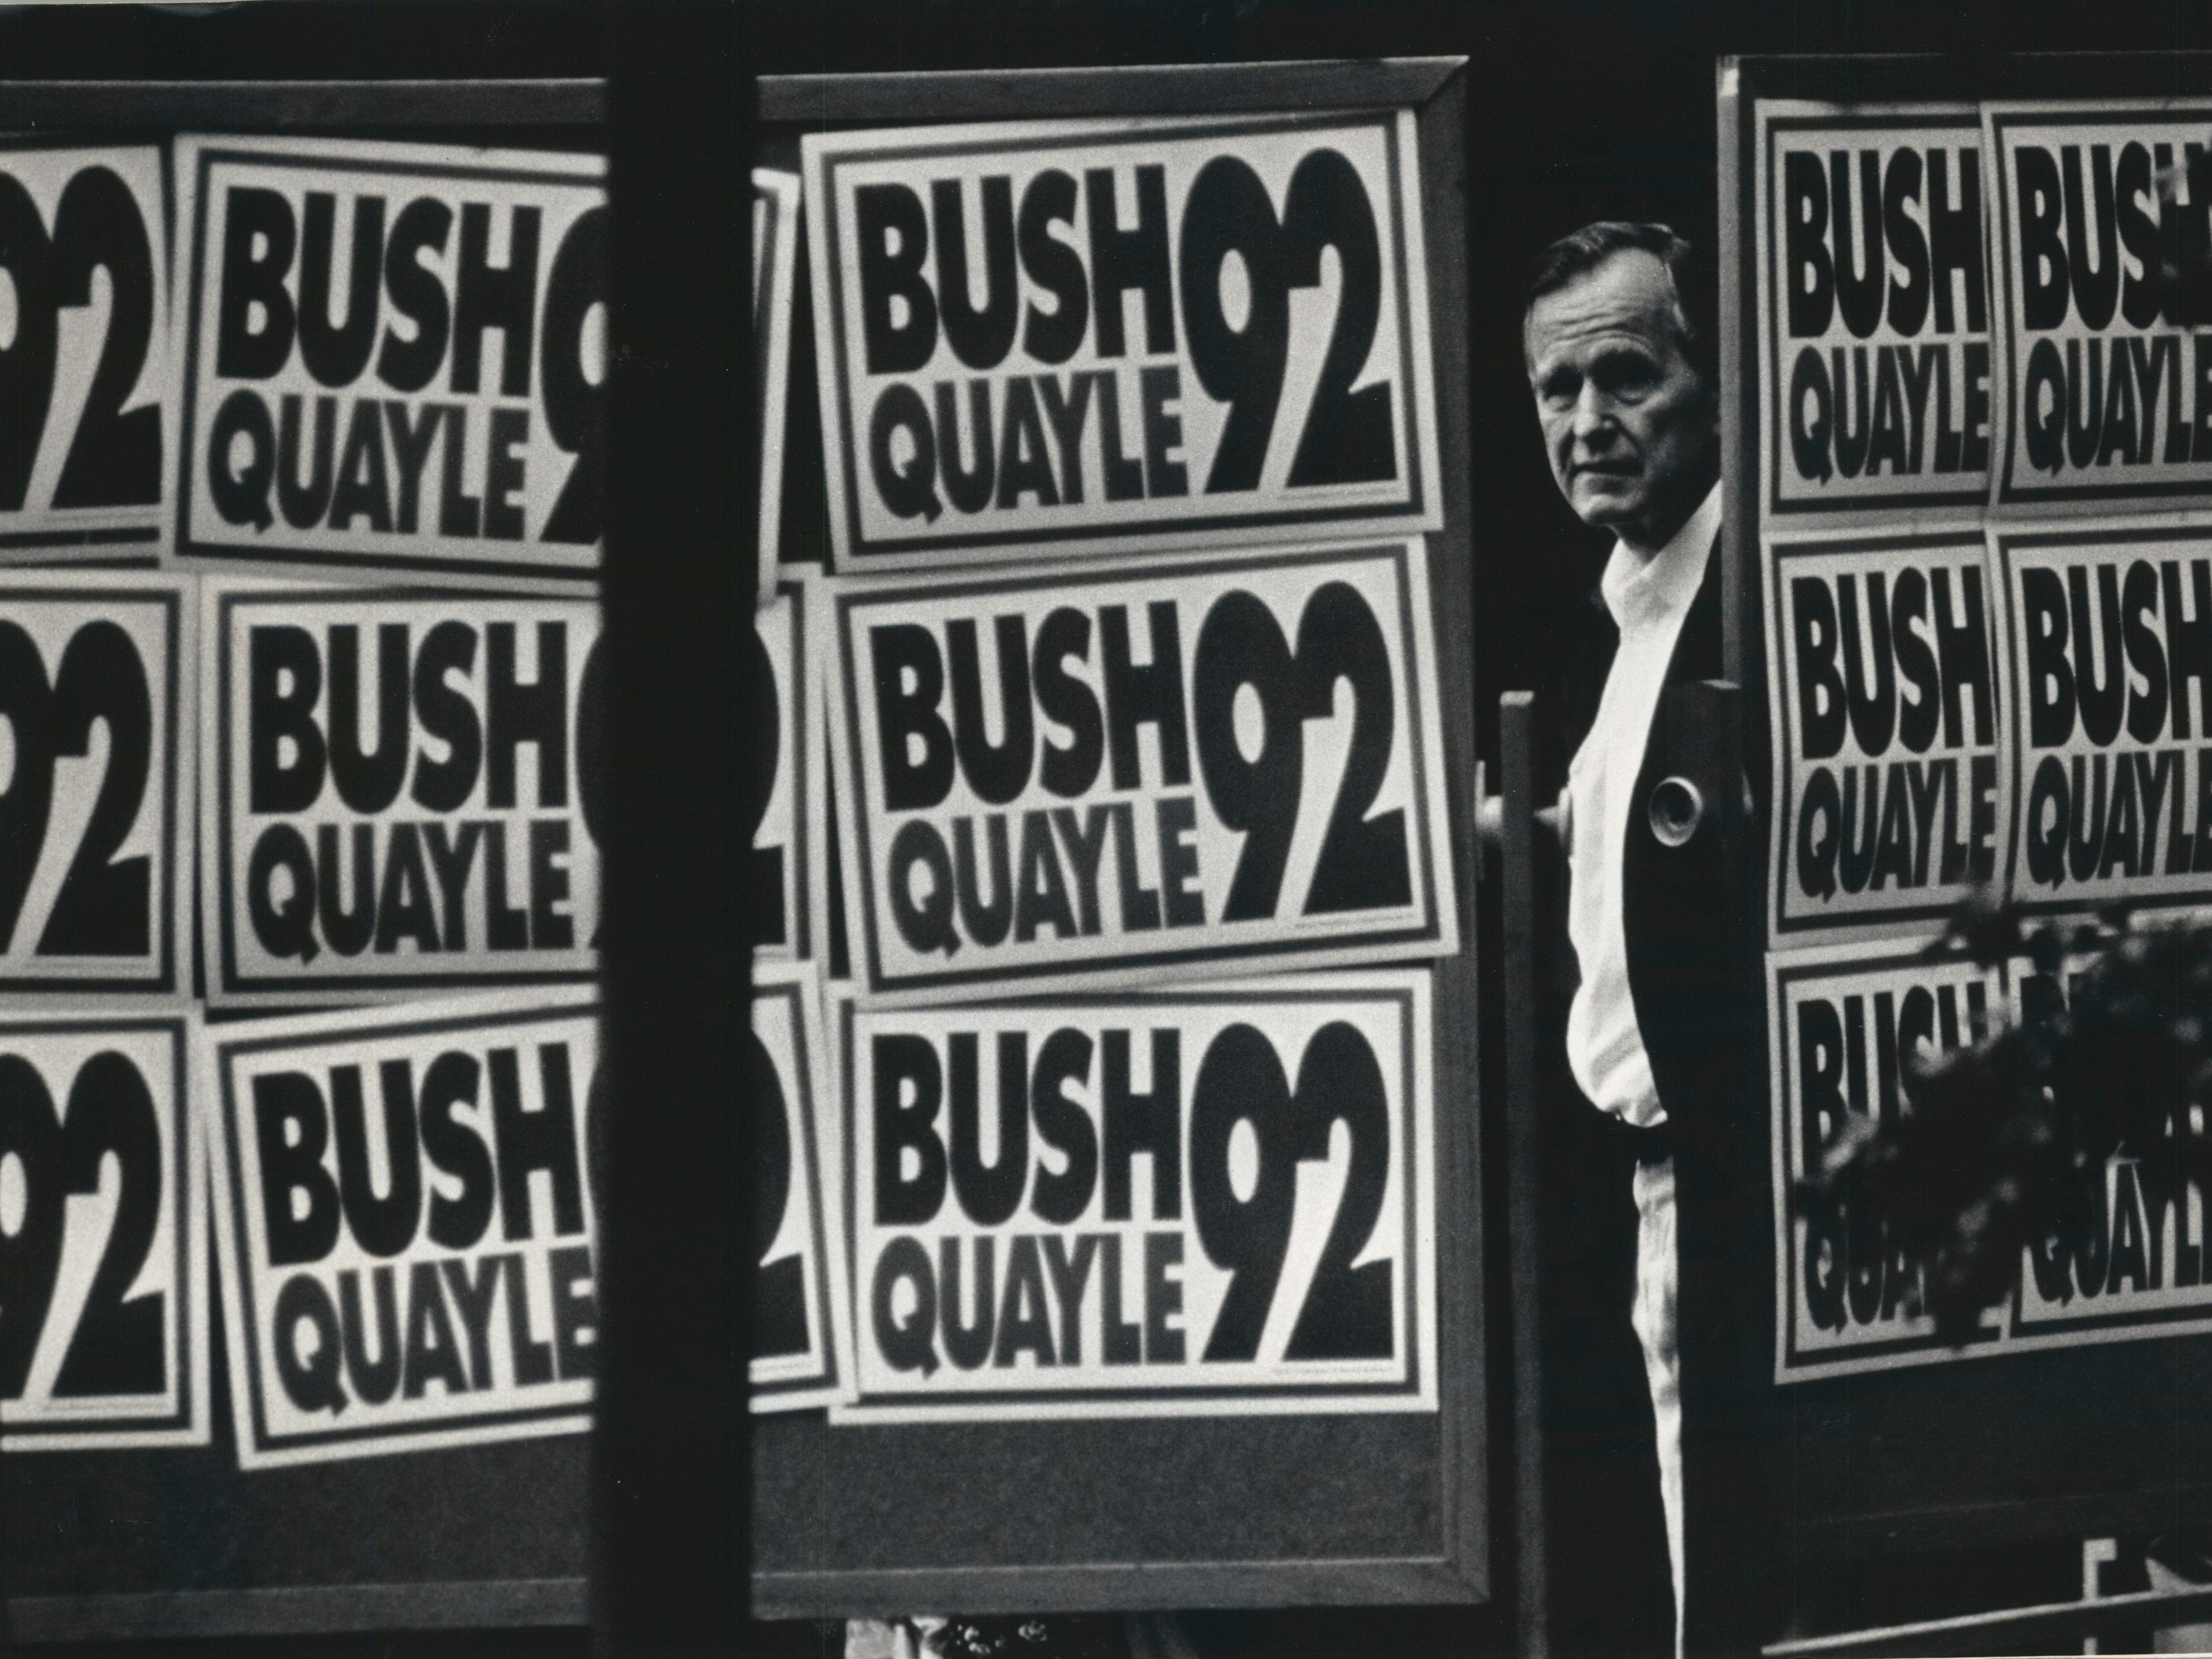 President Bush peers out at the Waukesha County Exposition Center crowd from behind a screen plastered with campaign posters in 1992 before being introduced by U.S Sen. Bob Kasten.